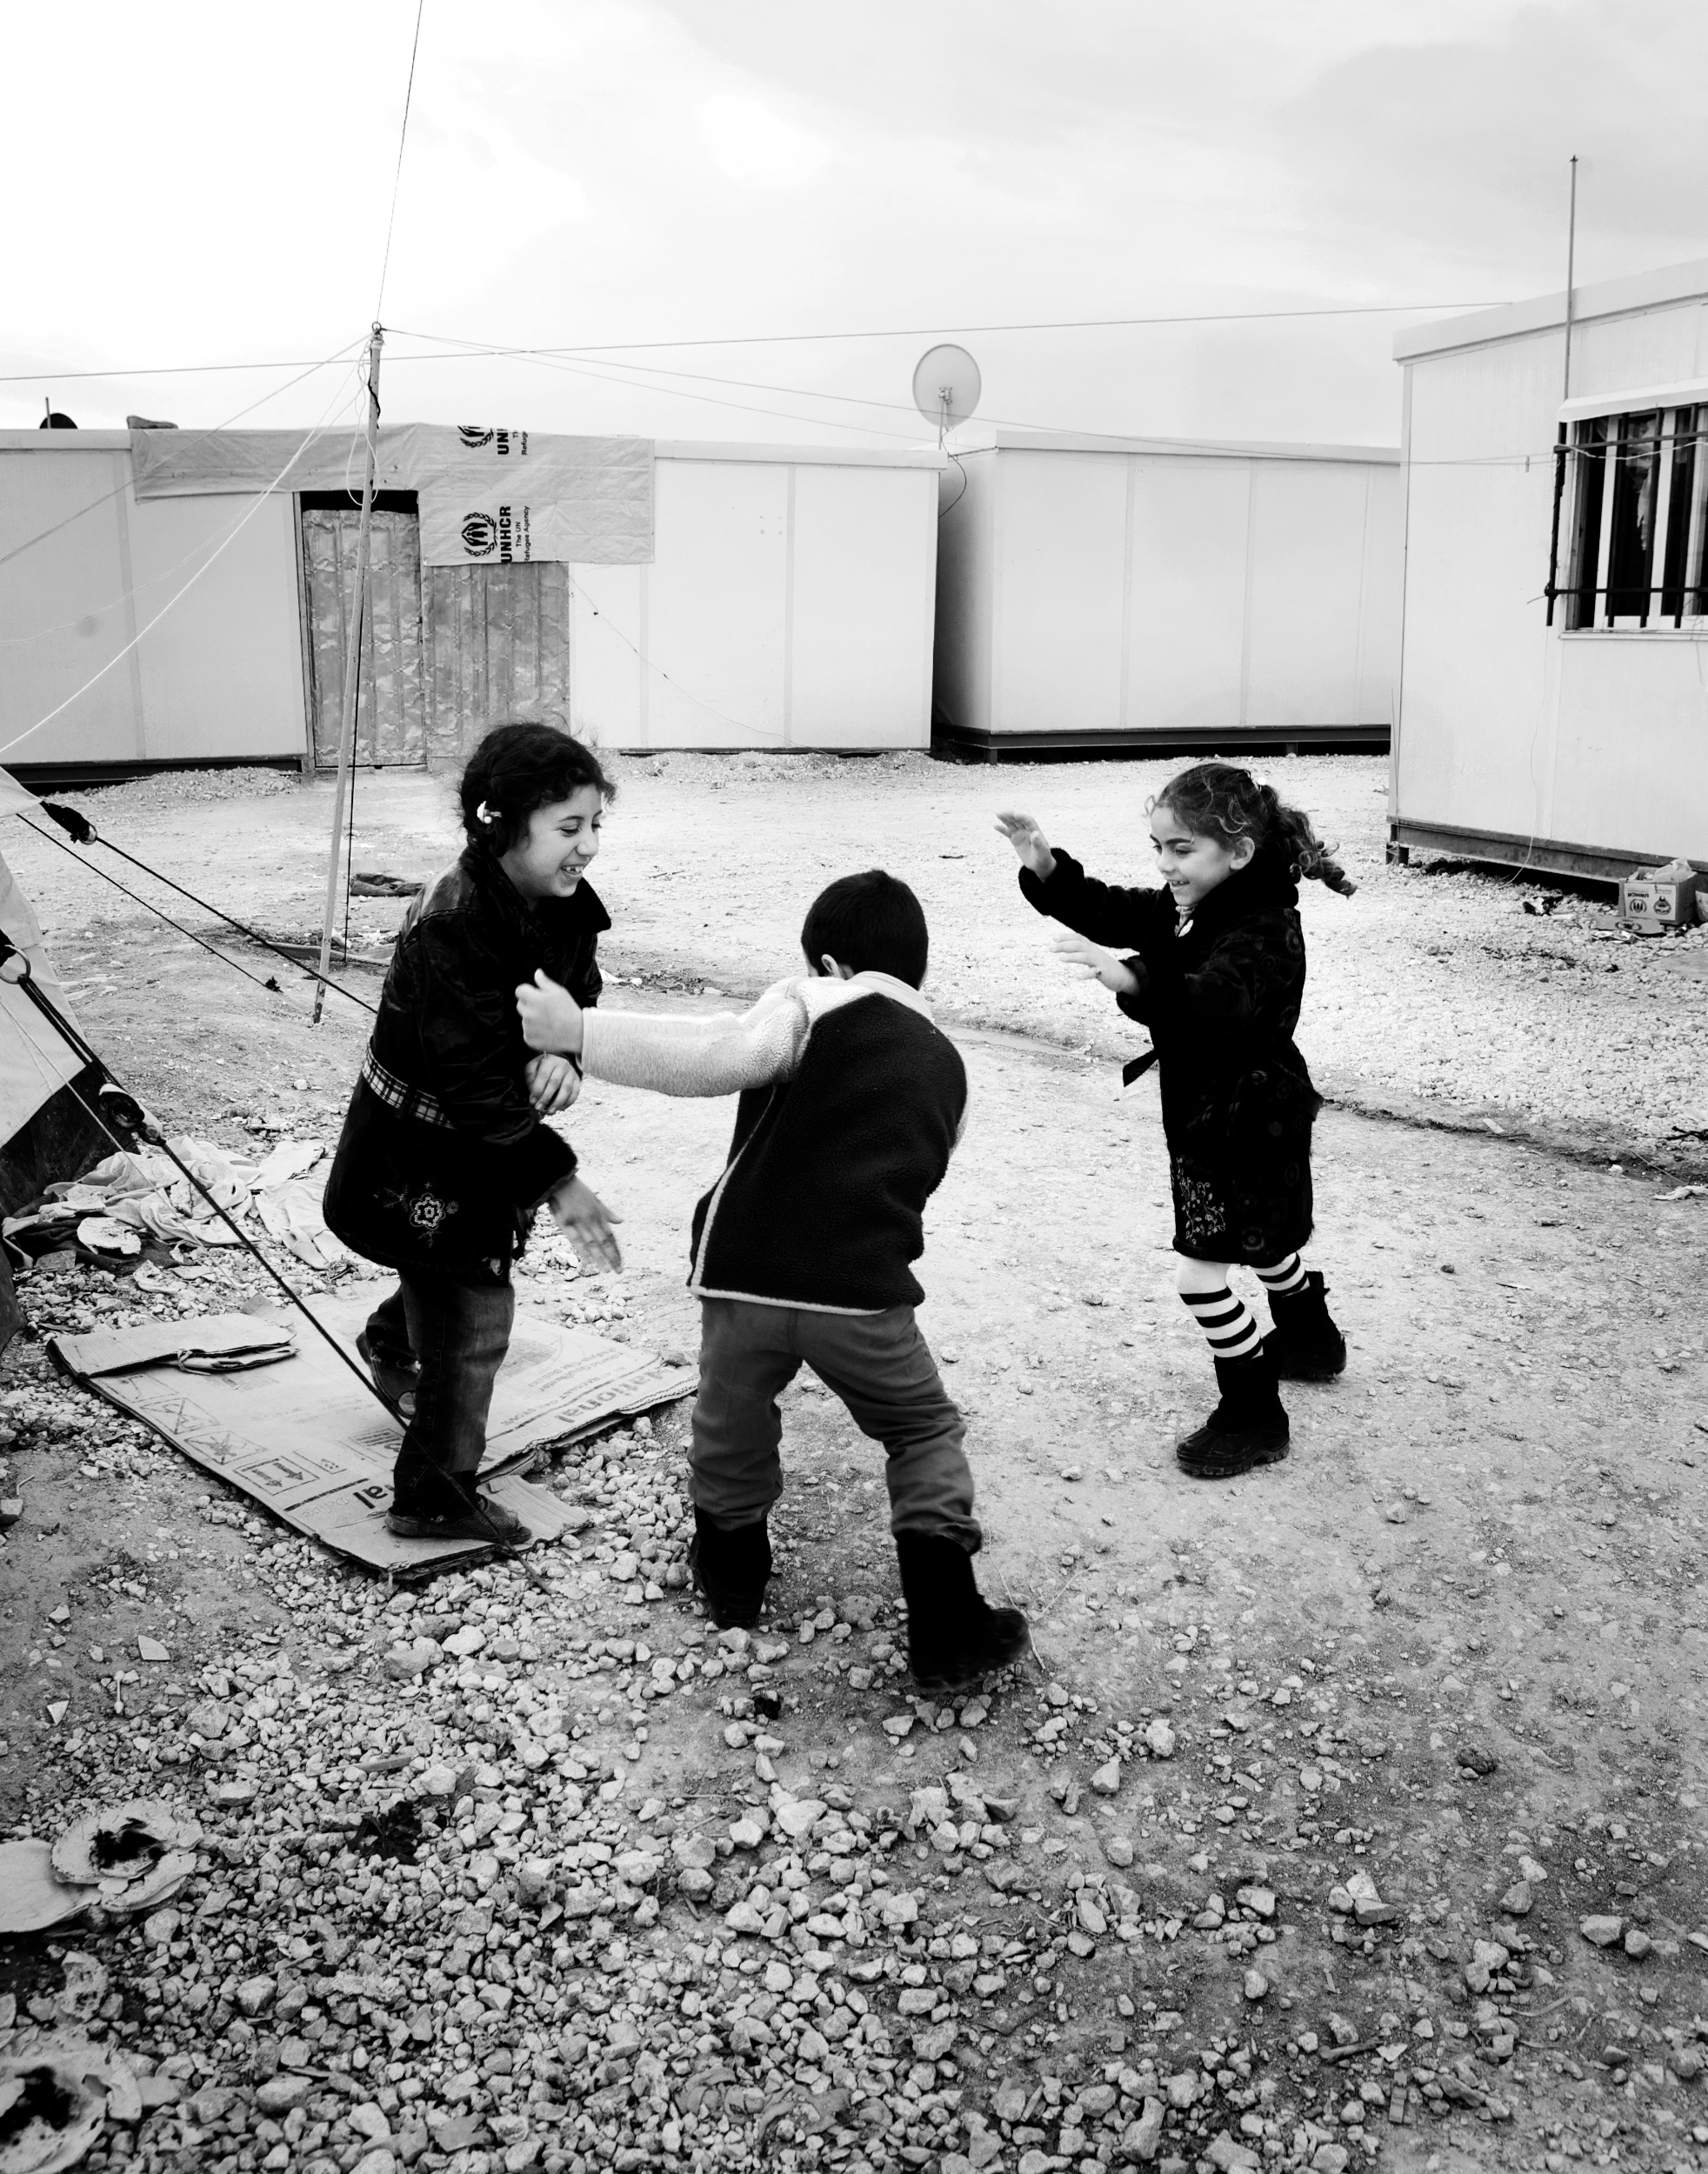 Mayam playes a game of catch with her cousins Ameer and Inas